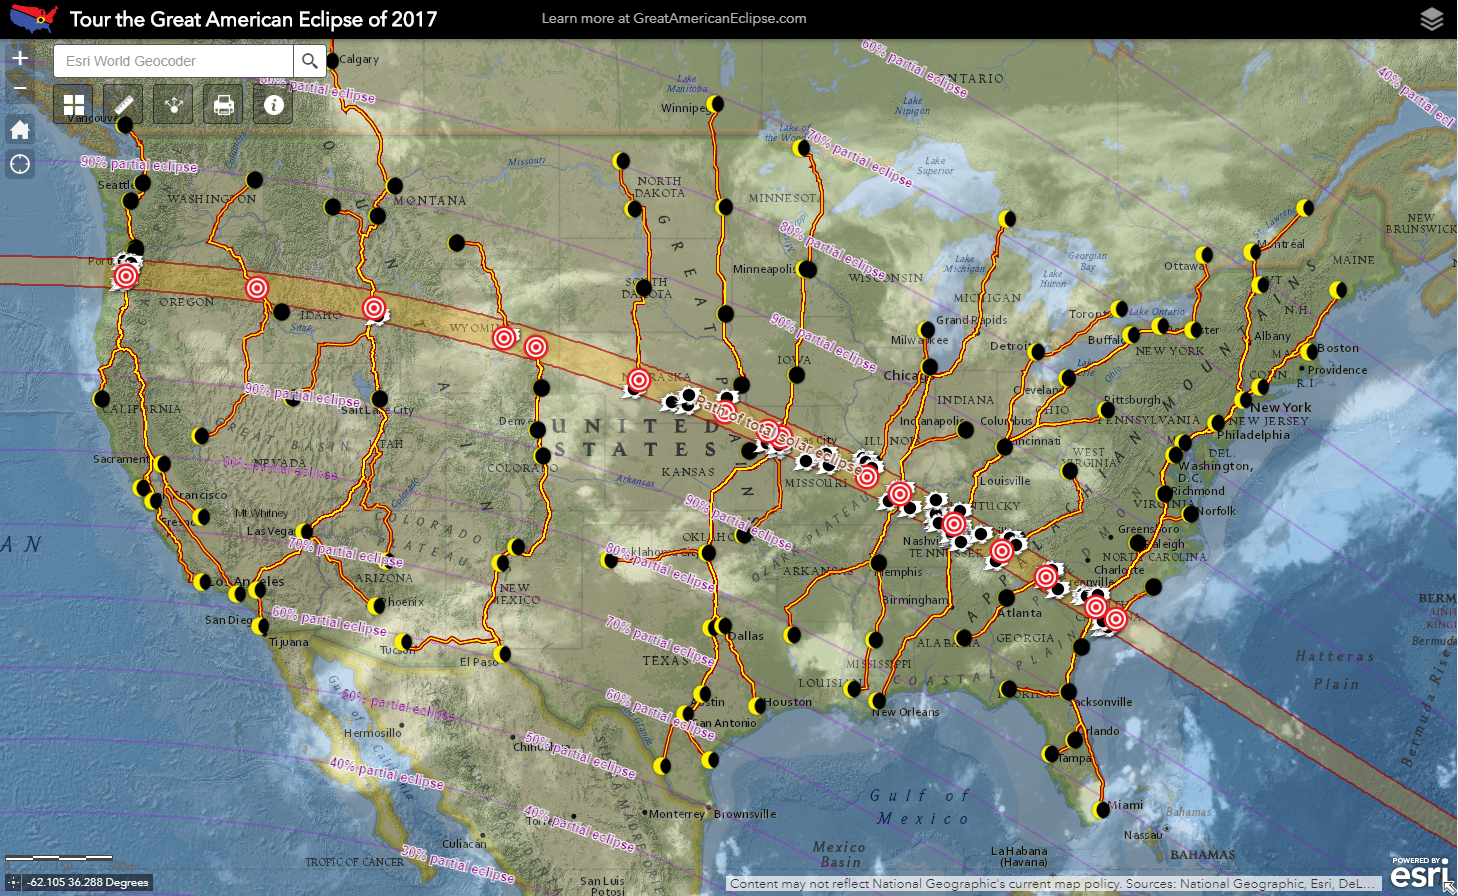 map showing all kinds of eclipse info from httpswwwgreatamericaneclipsecom